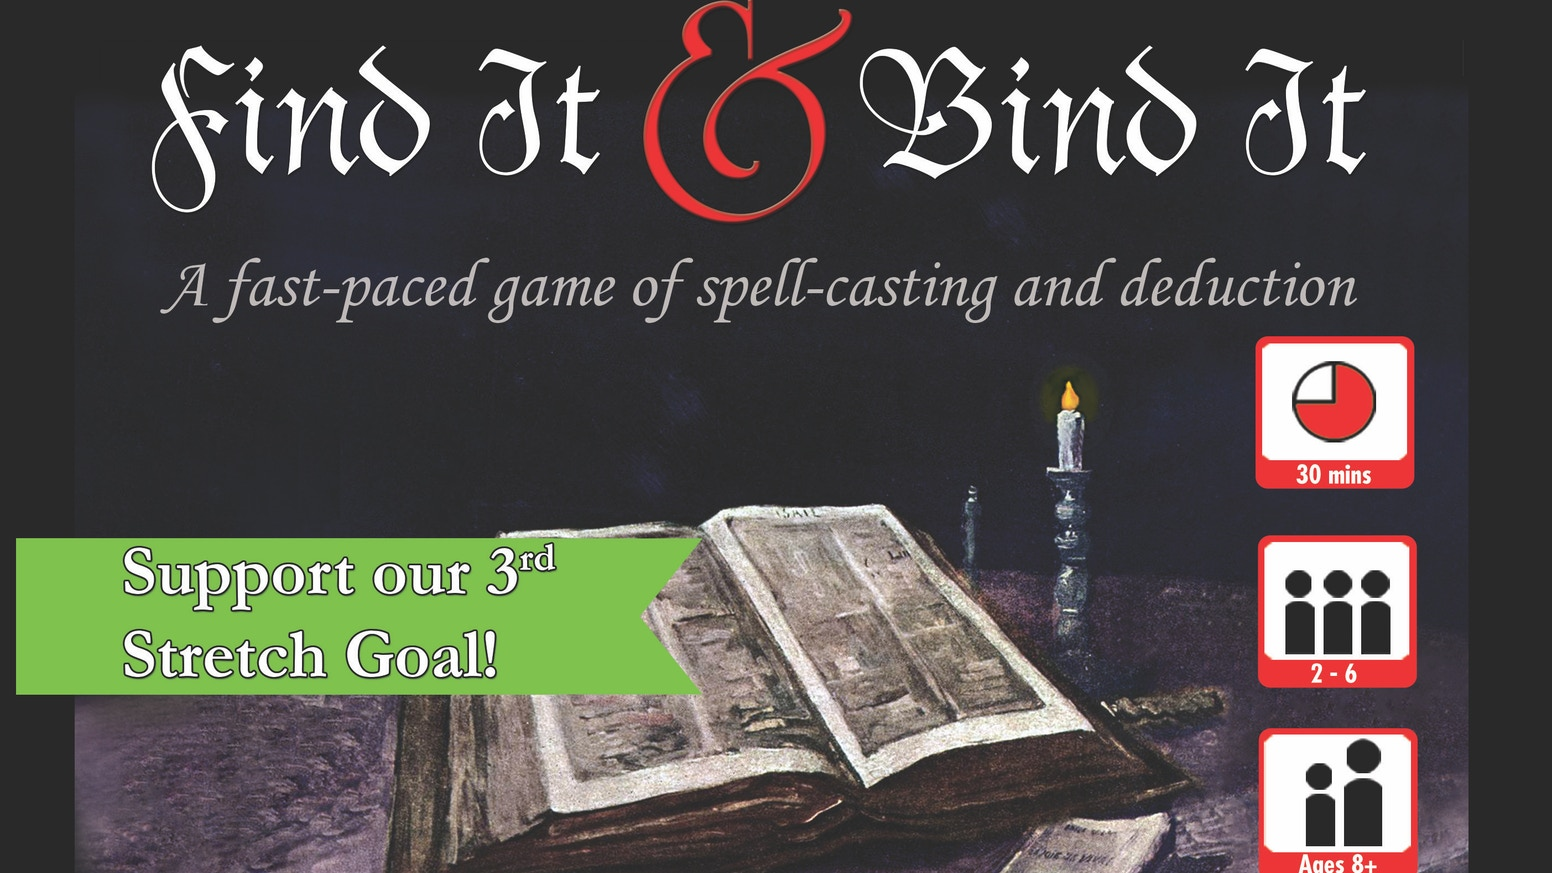 Fast-paced strategy card game for 2-6 players. Control 2 witches to find, and bind, the elusive Book of Shadows before anyone else.